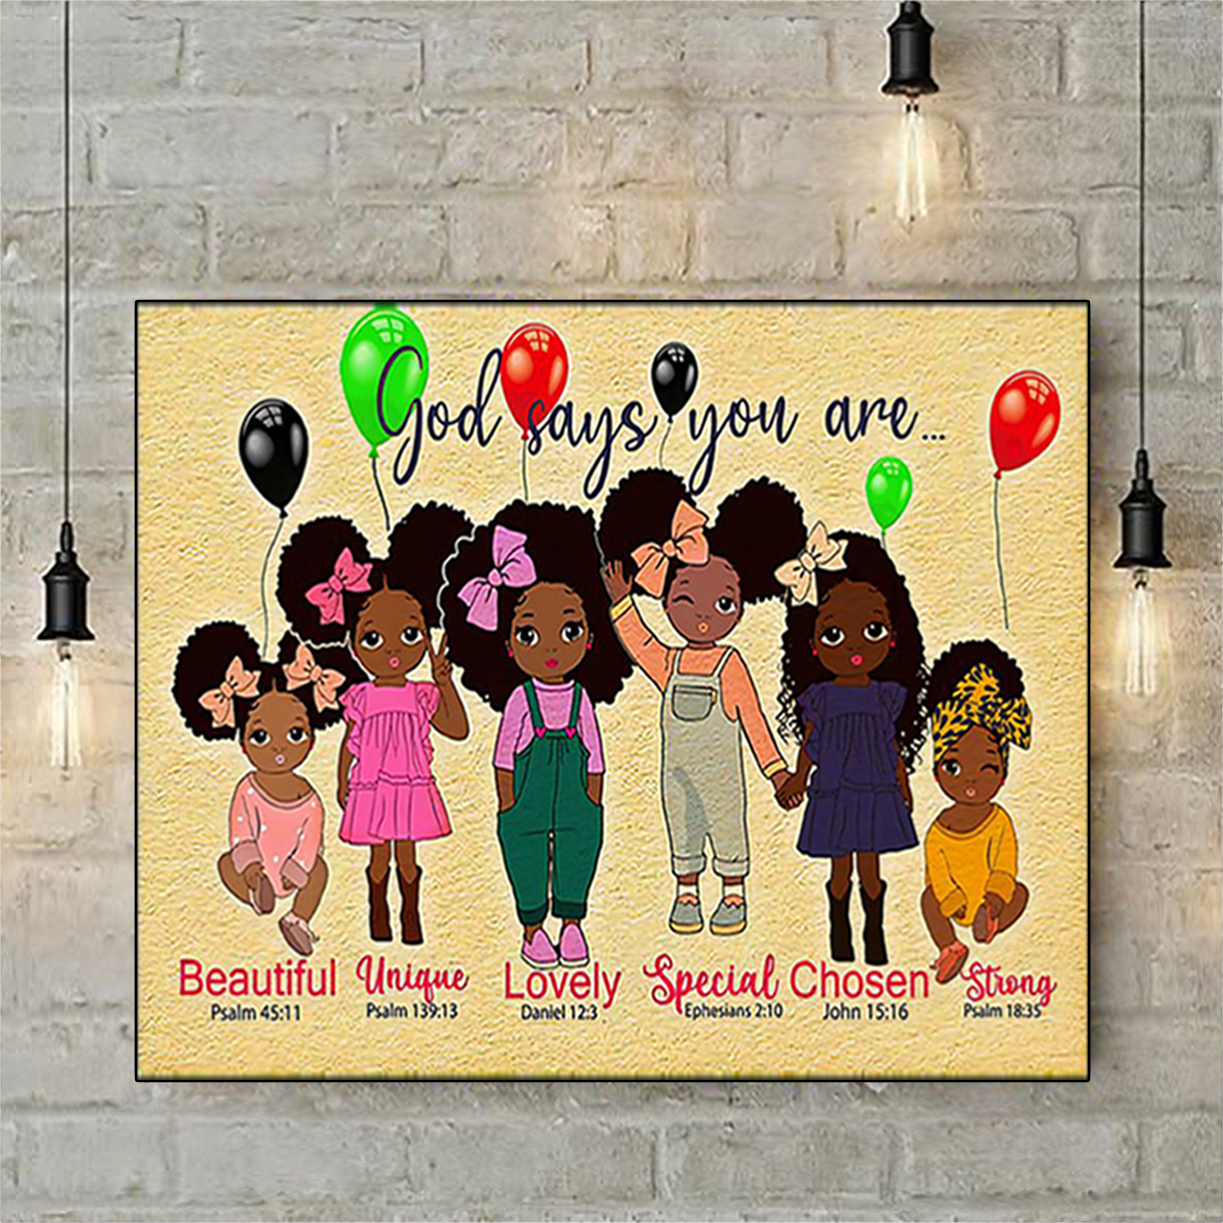 Black girl godchild says you are poster A1